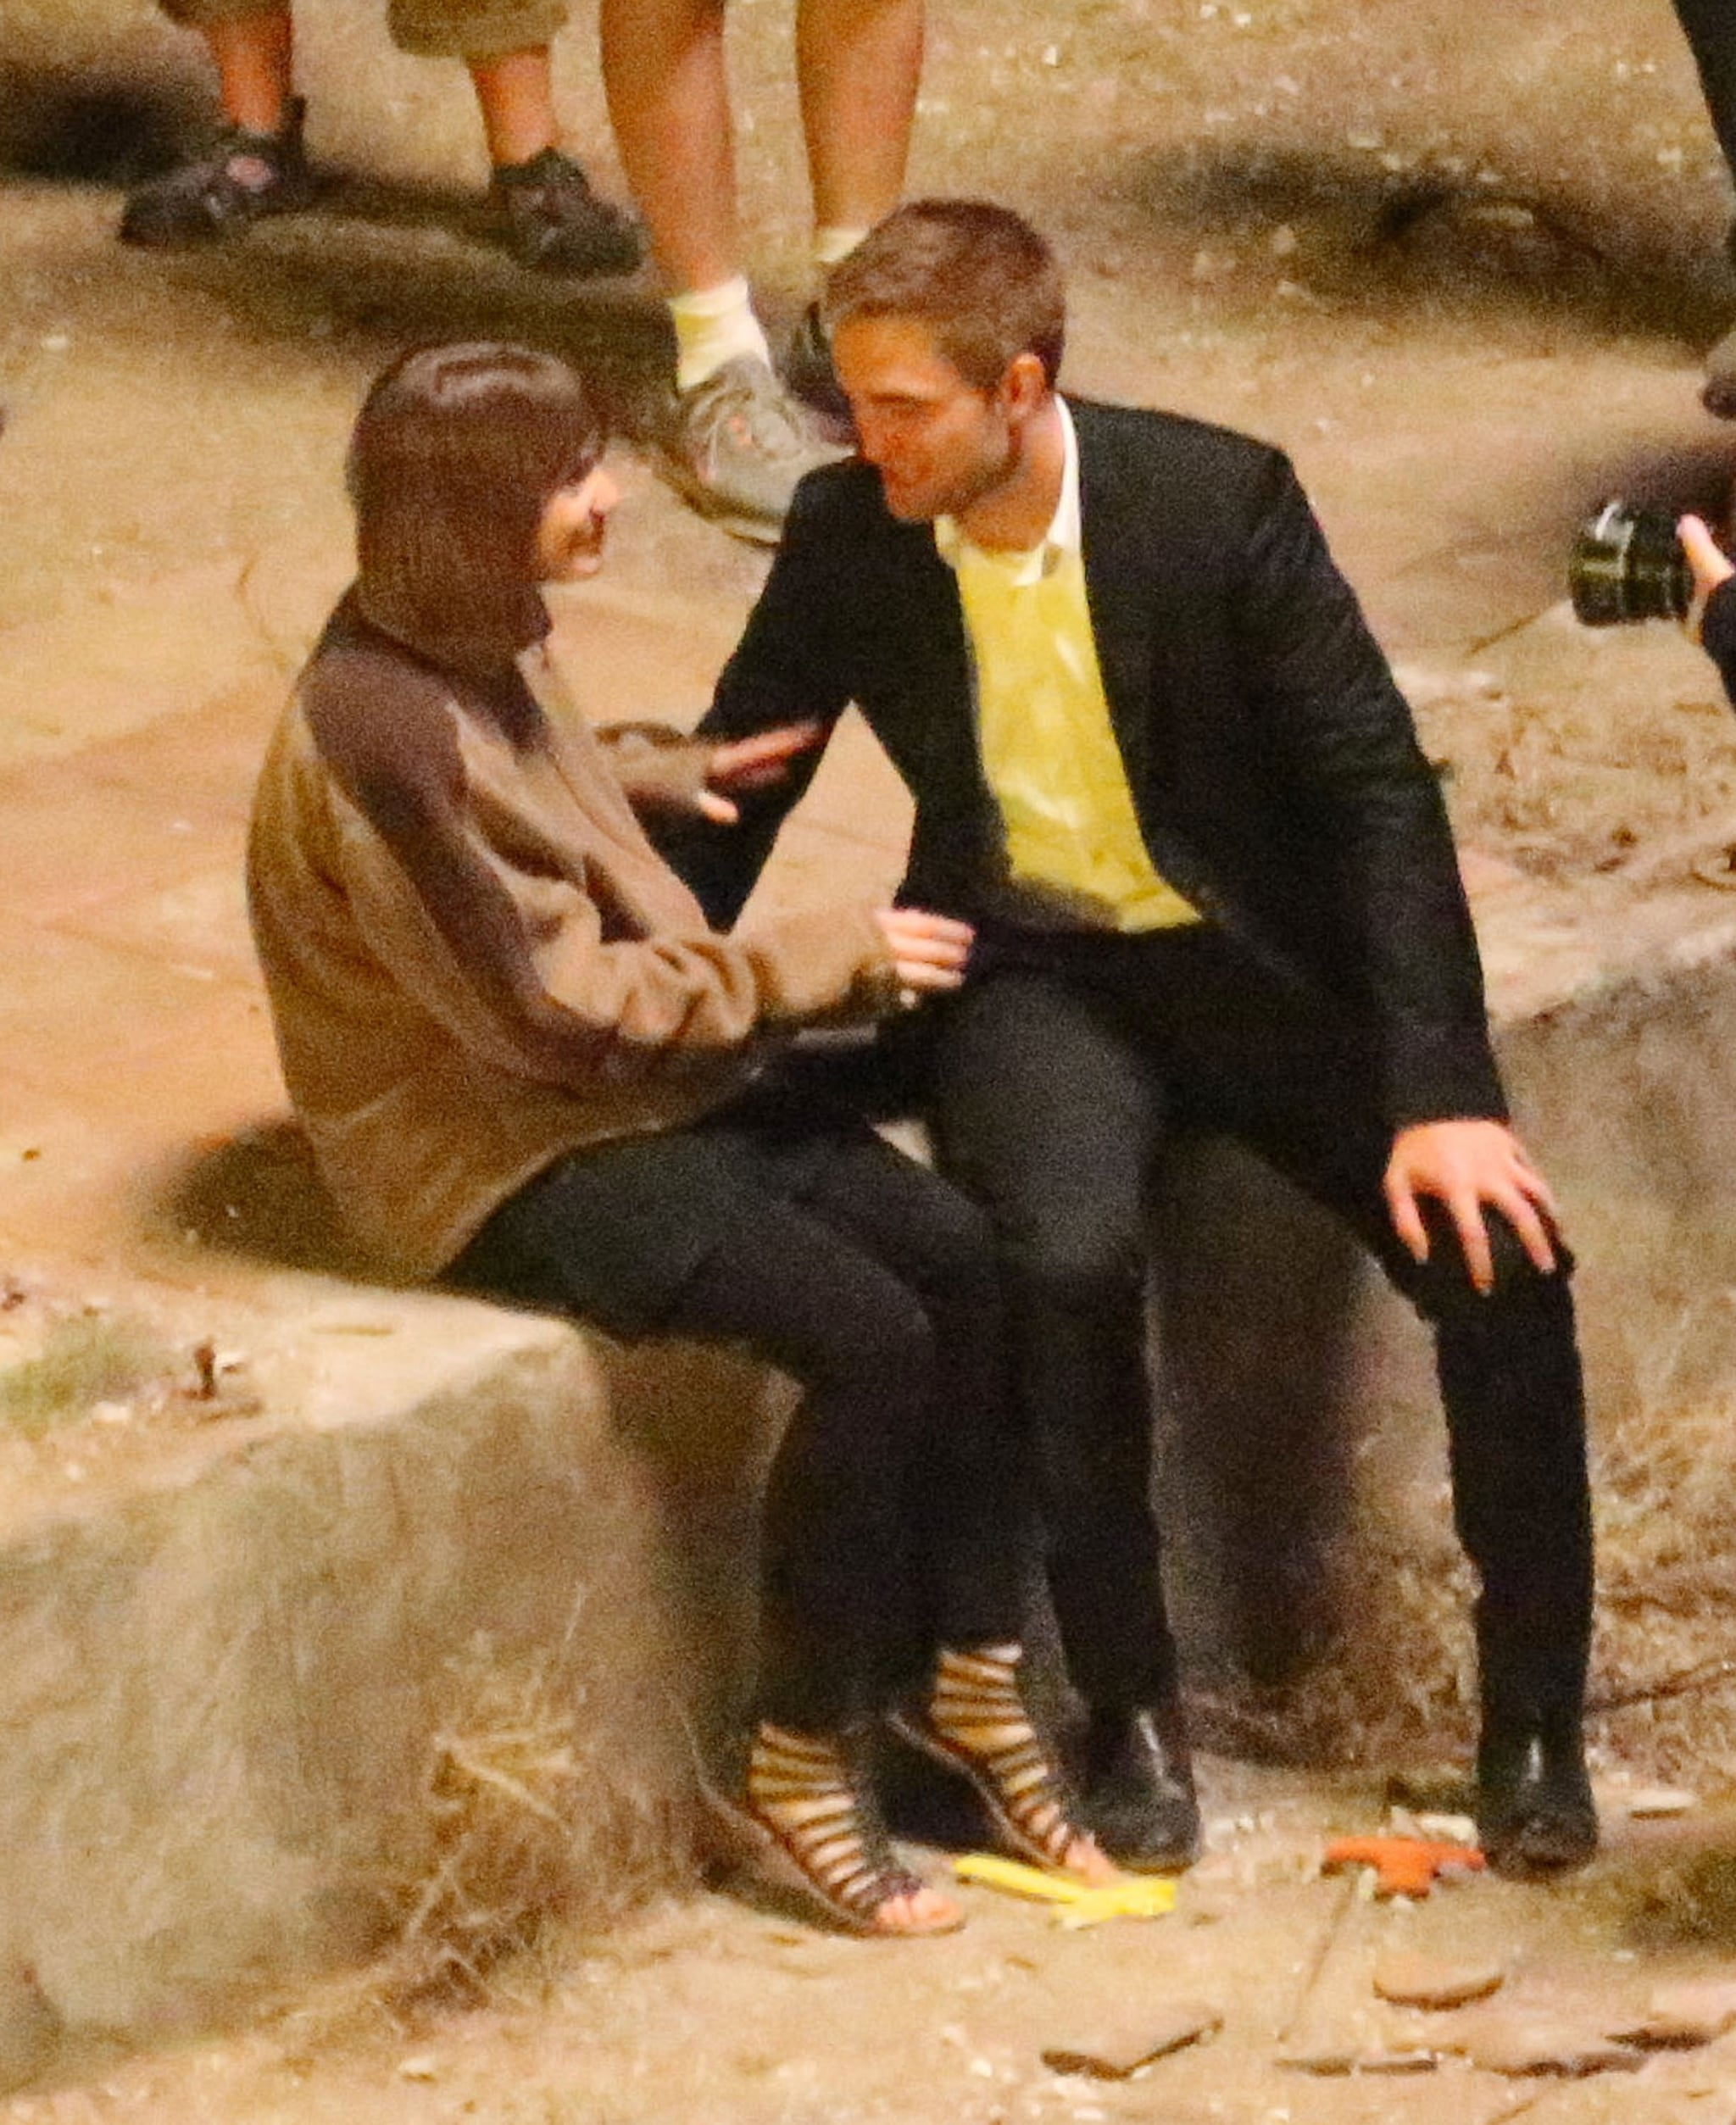 Robert Pattinson chatted with Mia Wasikowska between takes.